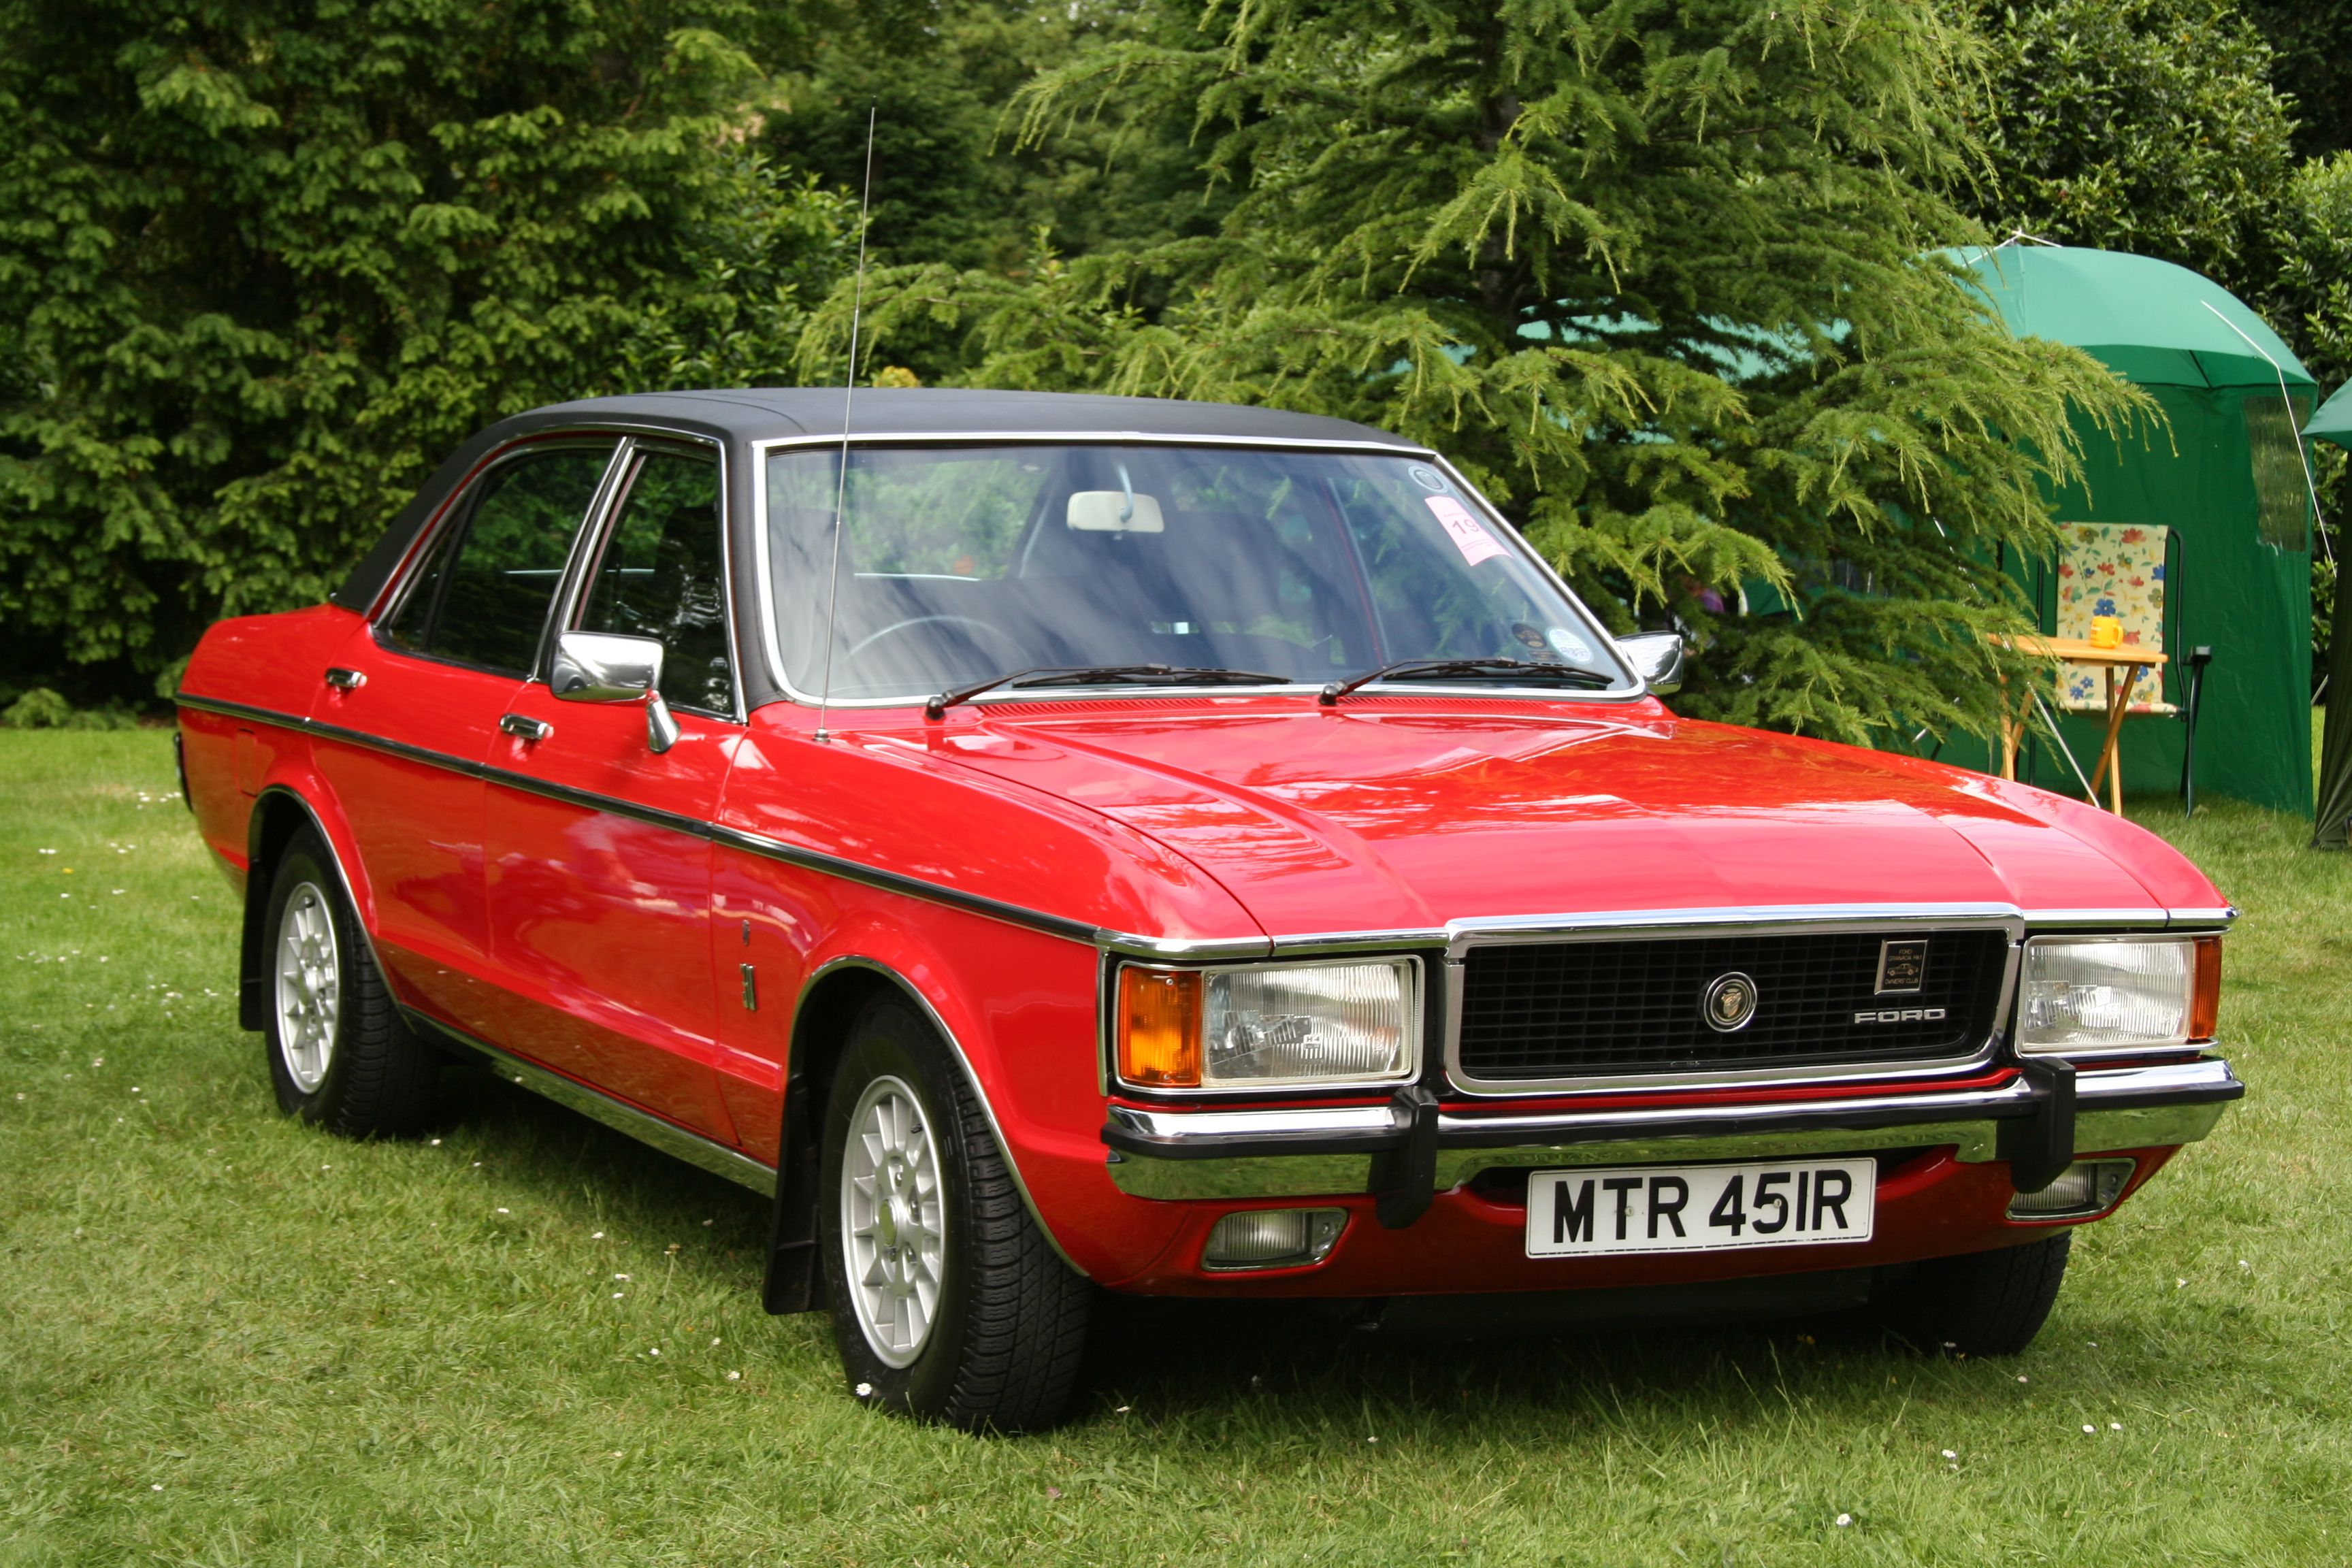 file ford granada mark i europe jpg wikipedia. Black Bedroom Furniture Sets. Home Design Ideas